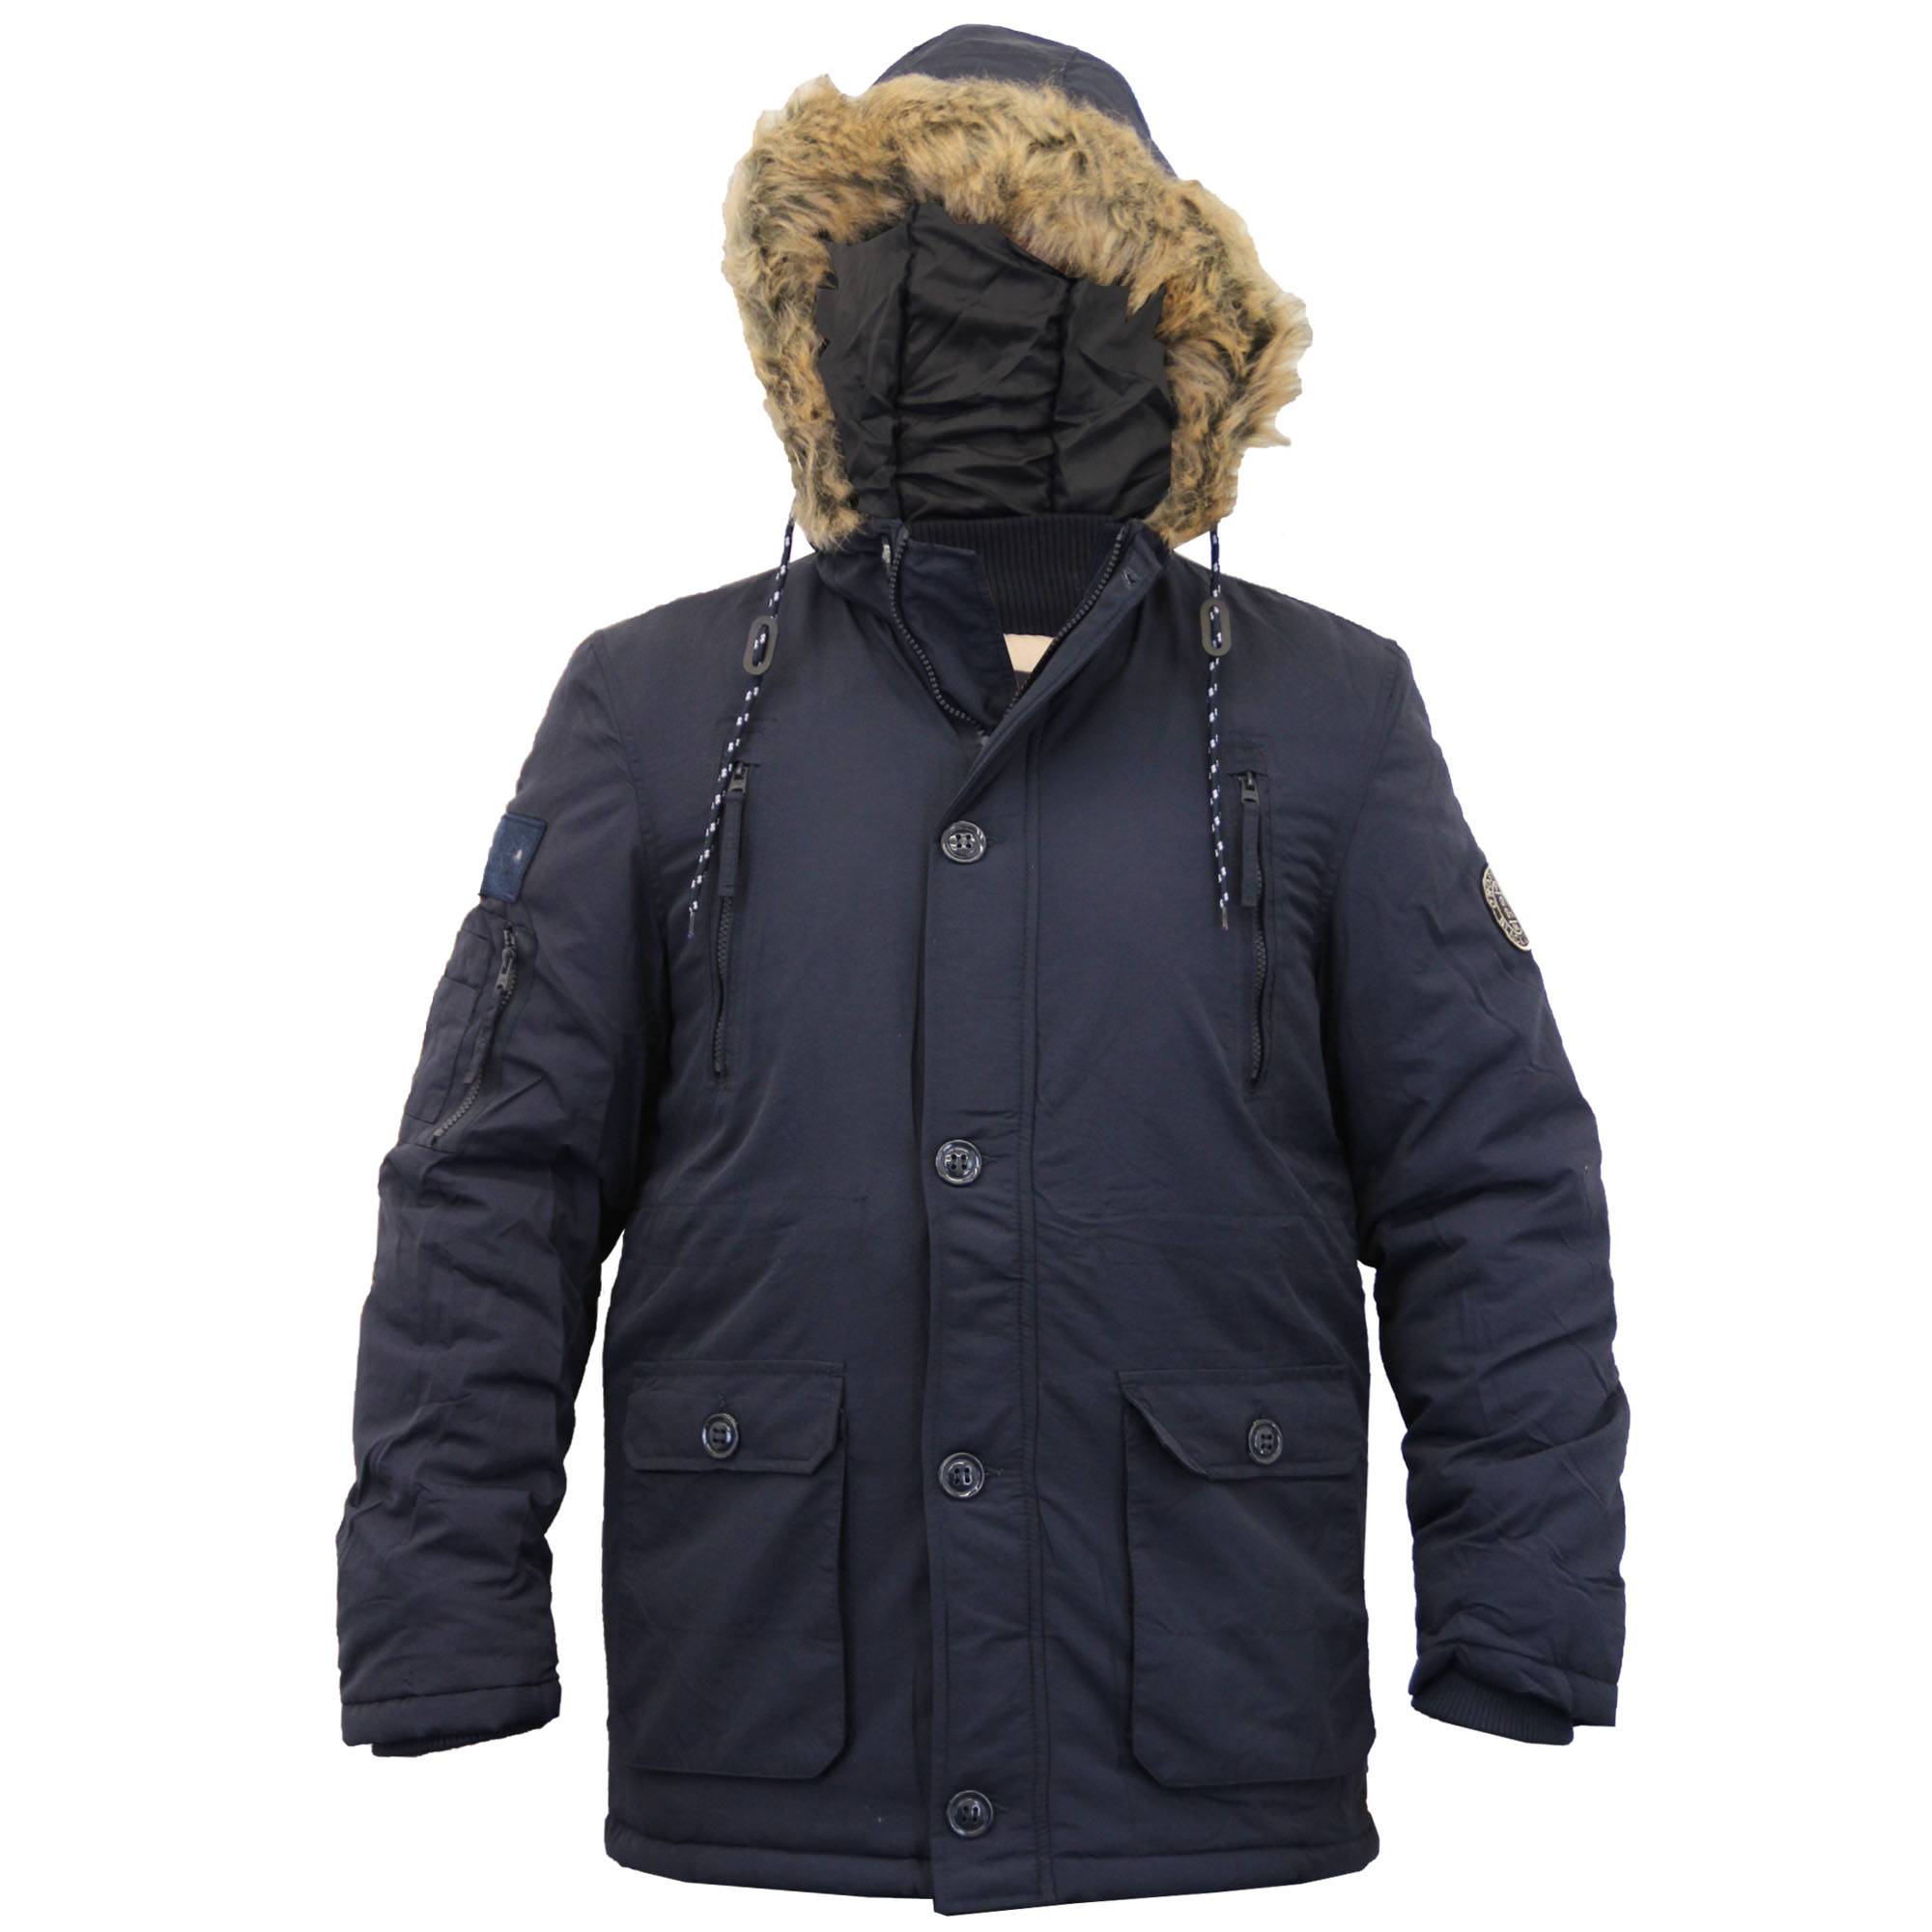 Shop a great selection of Men's Down Coats & Parkas at Nordstrom Rack. Find designer Men's Down Coats & Parkas up to 70% off and get free shipping on orders over $